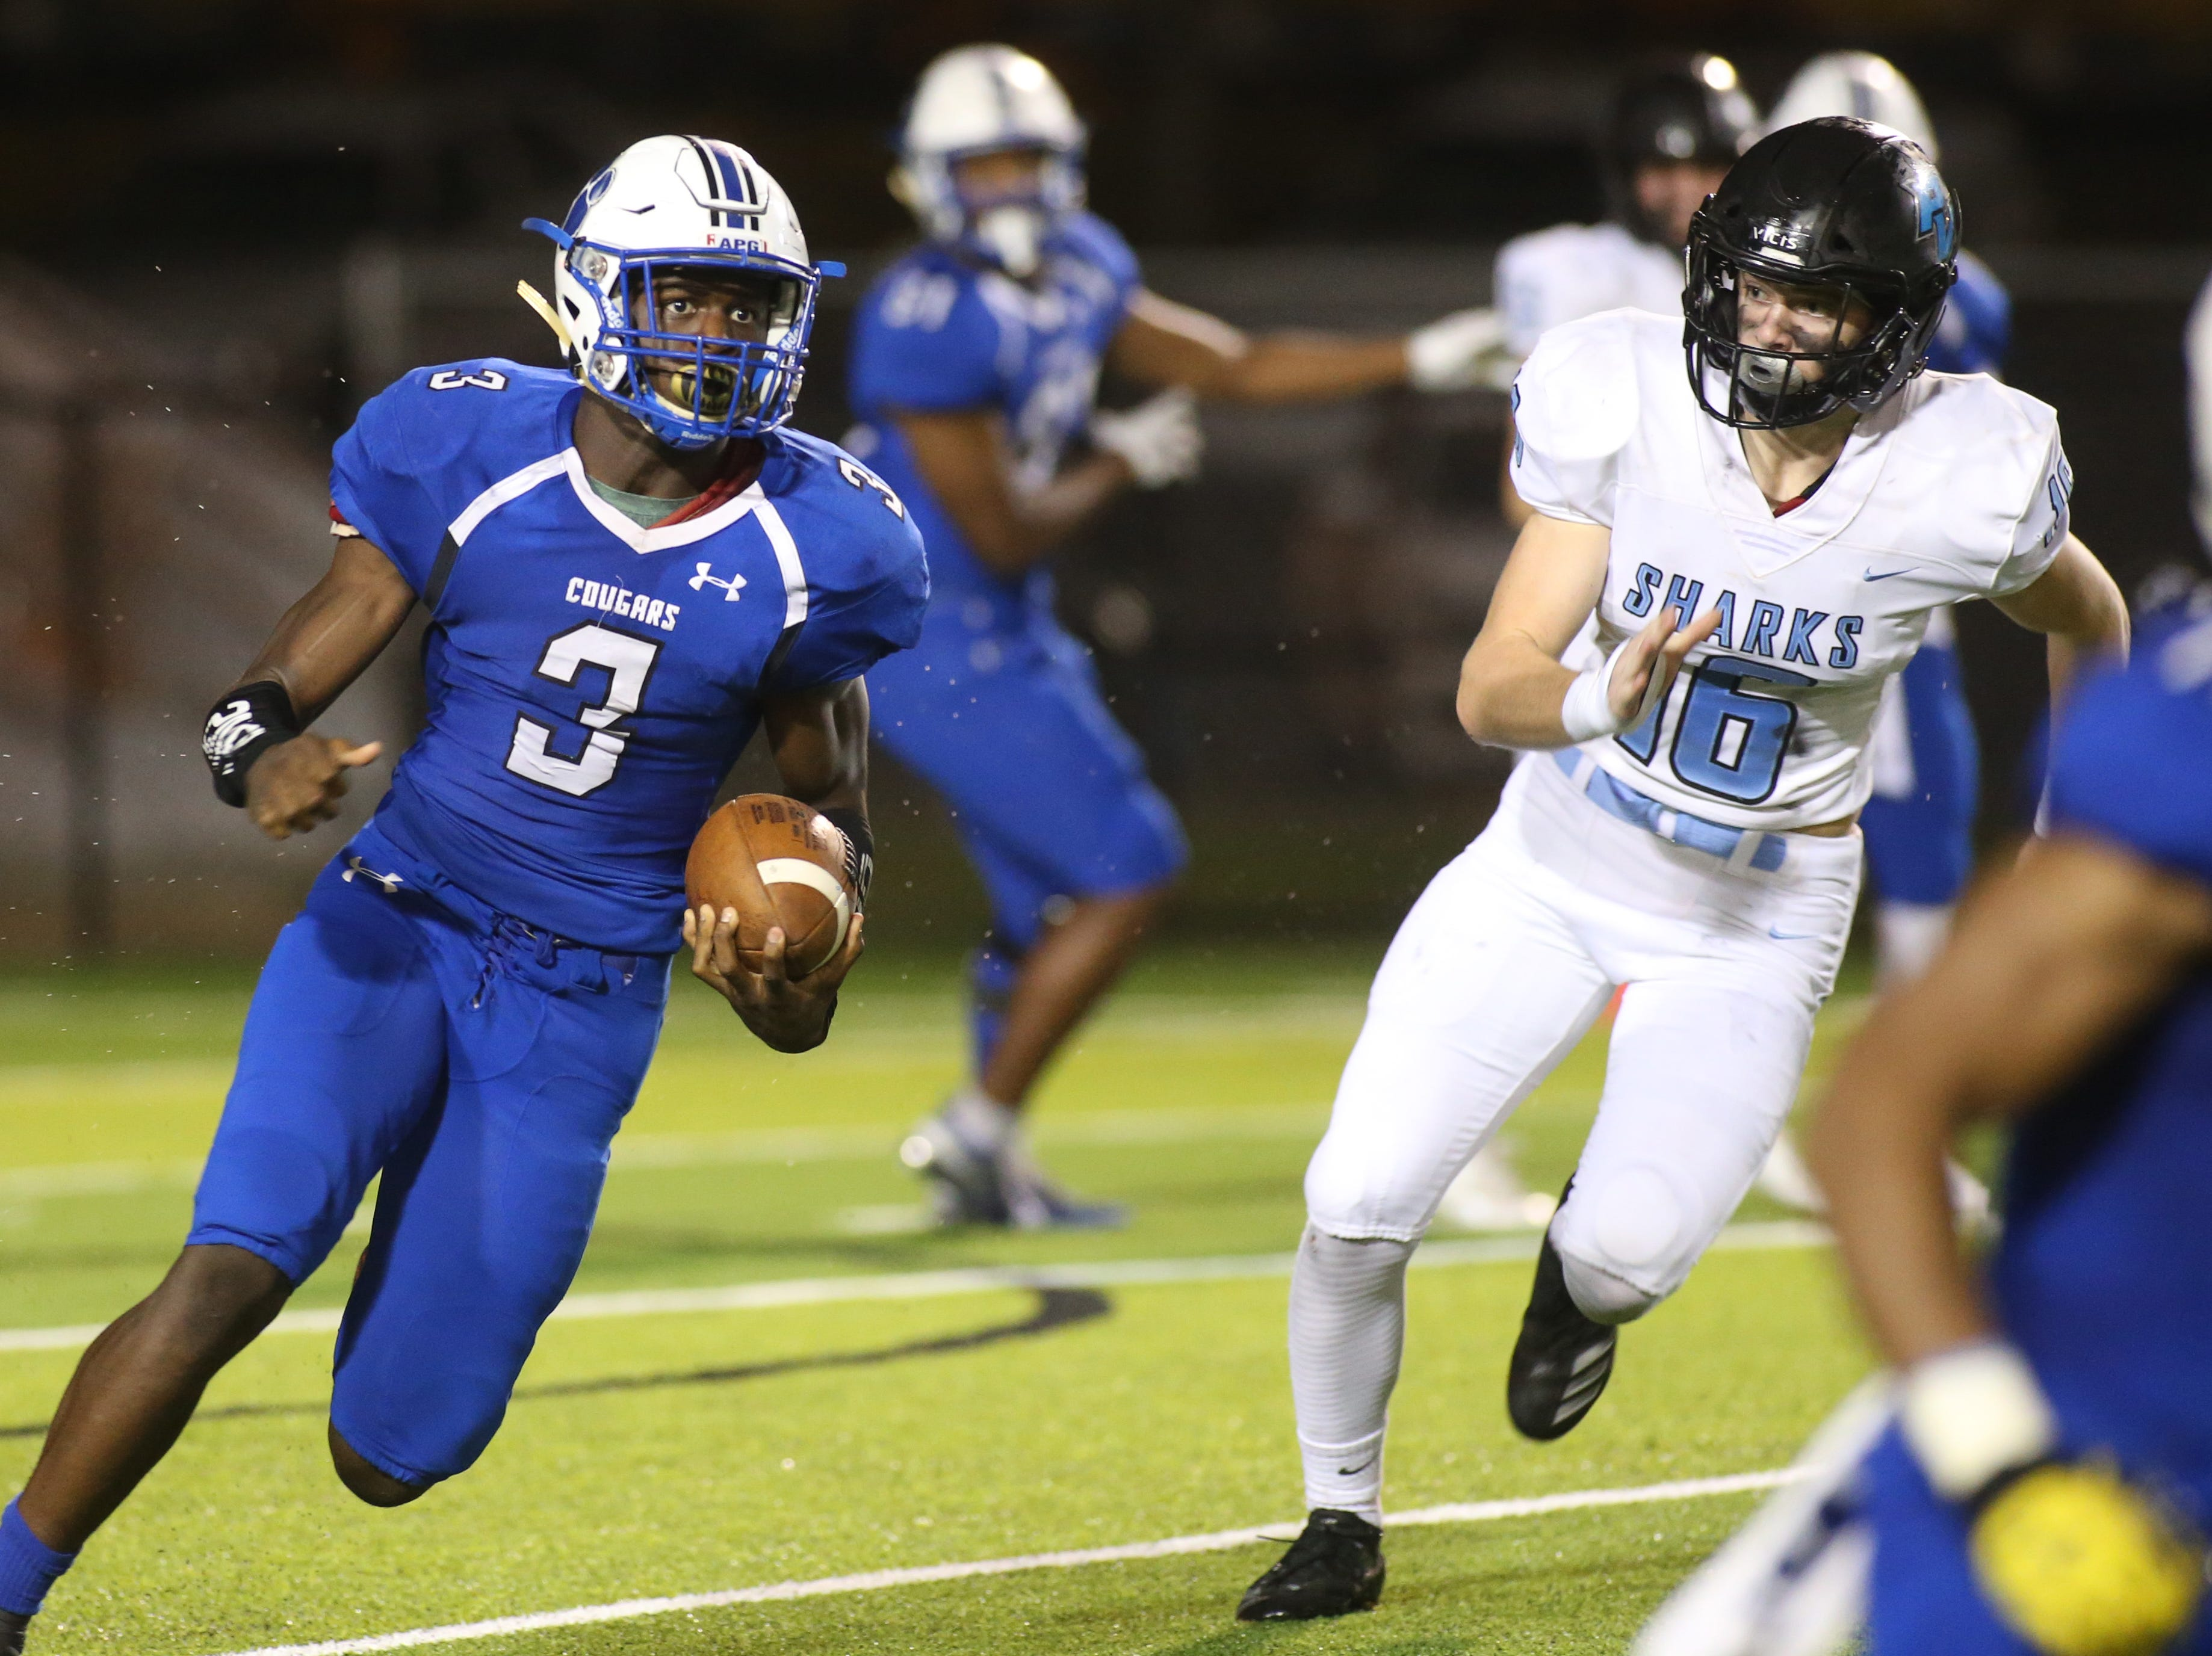 Godby running back Jaquez Yant (3) runs the ball to get a first down as the Ponte Vedra Sharks face off against the Godby Cougars, in the Region 1-5A quarterfinal high school football playoff game at Gene Cox Stadium, Friday, Nov. 9, 2018.